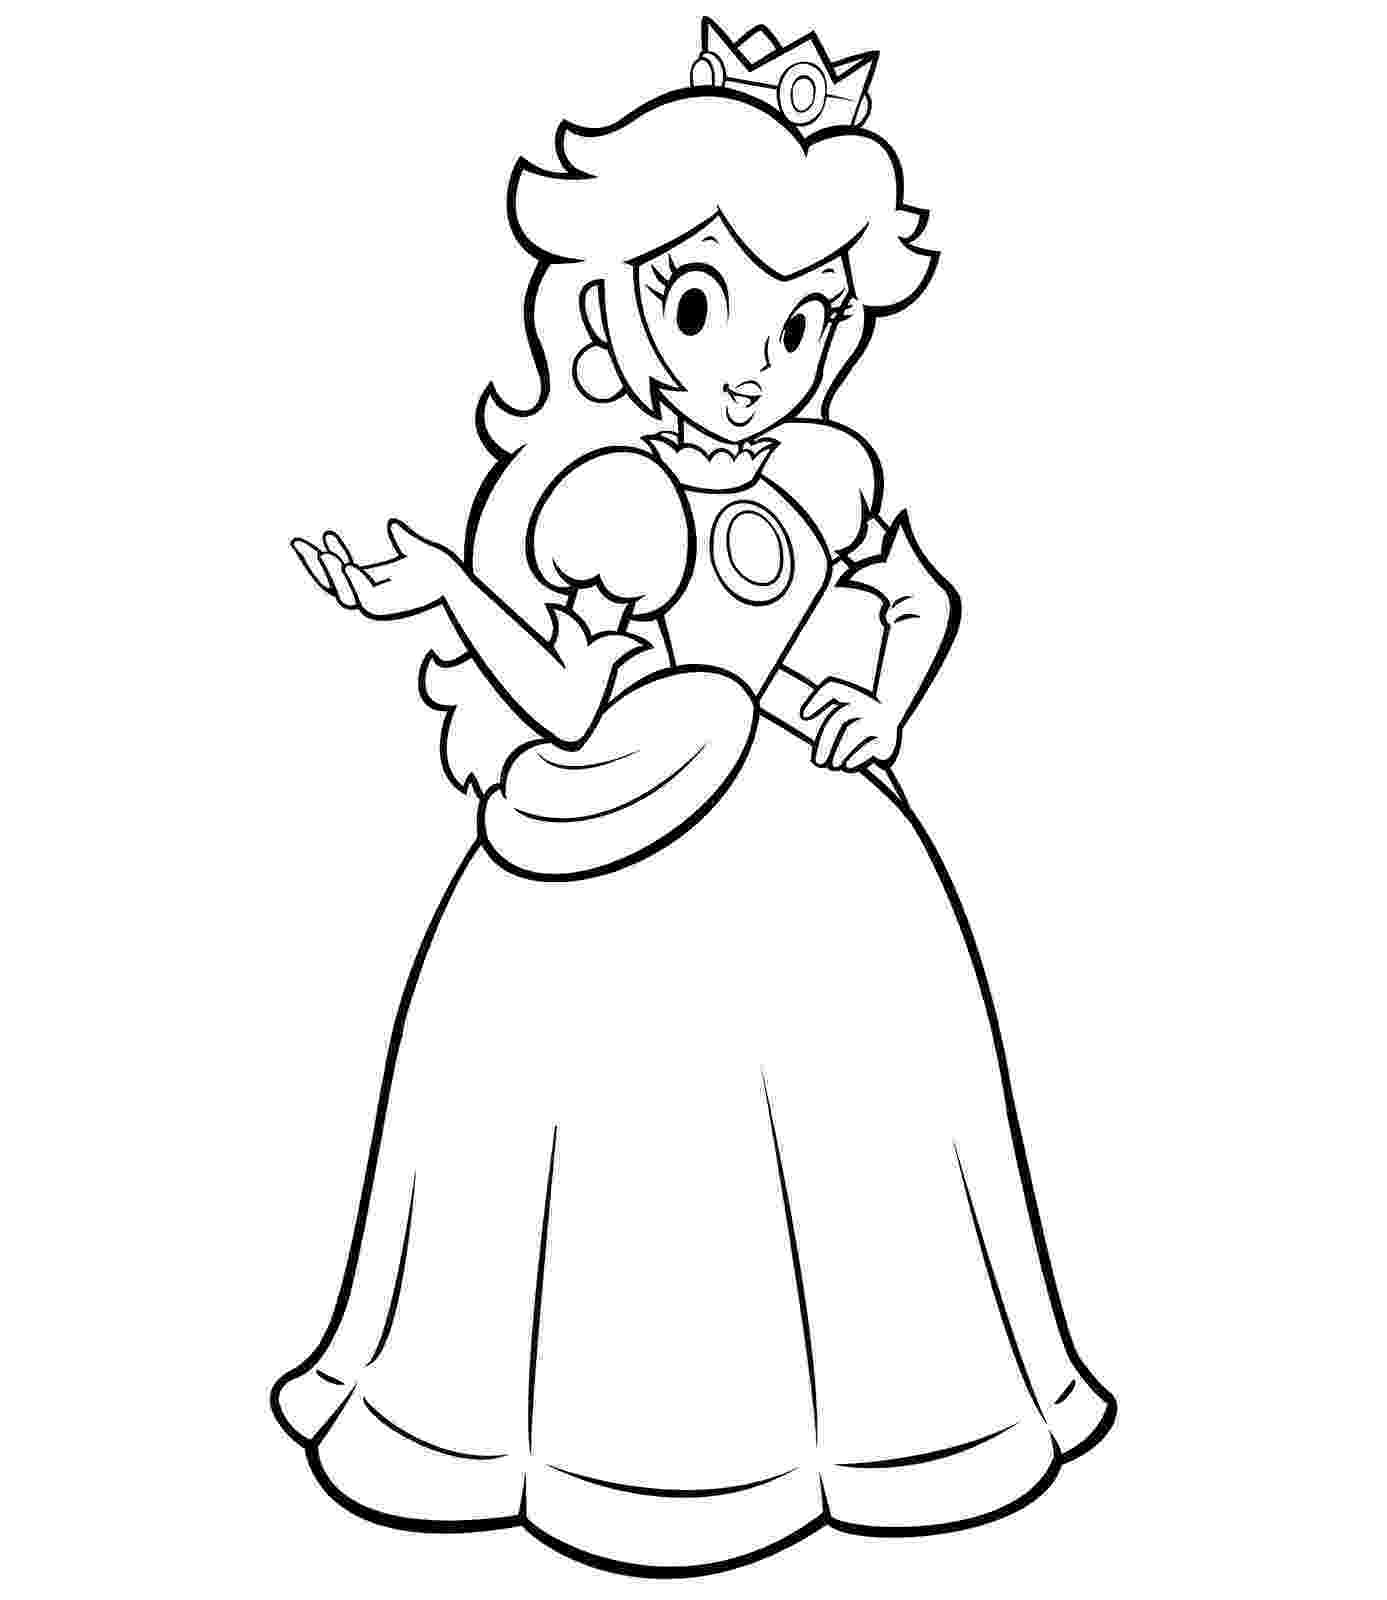 coloring pages princesses princess coloring pages best coloring pages for kids princesses coloring pages 1 1